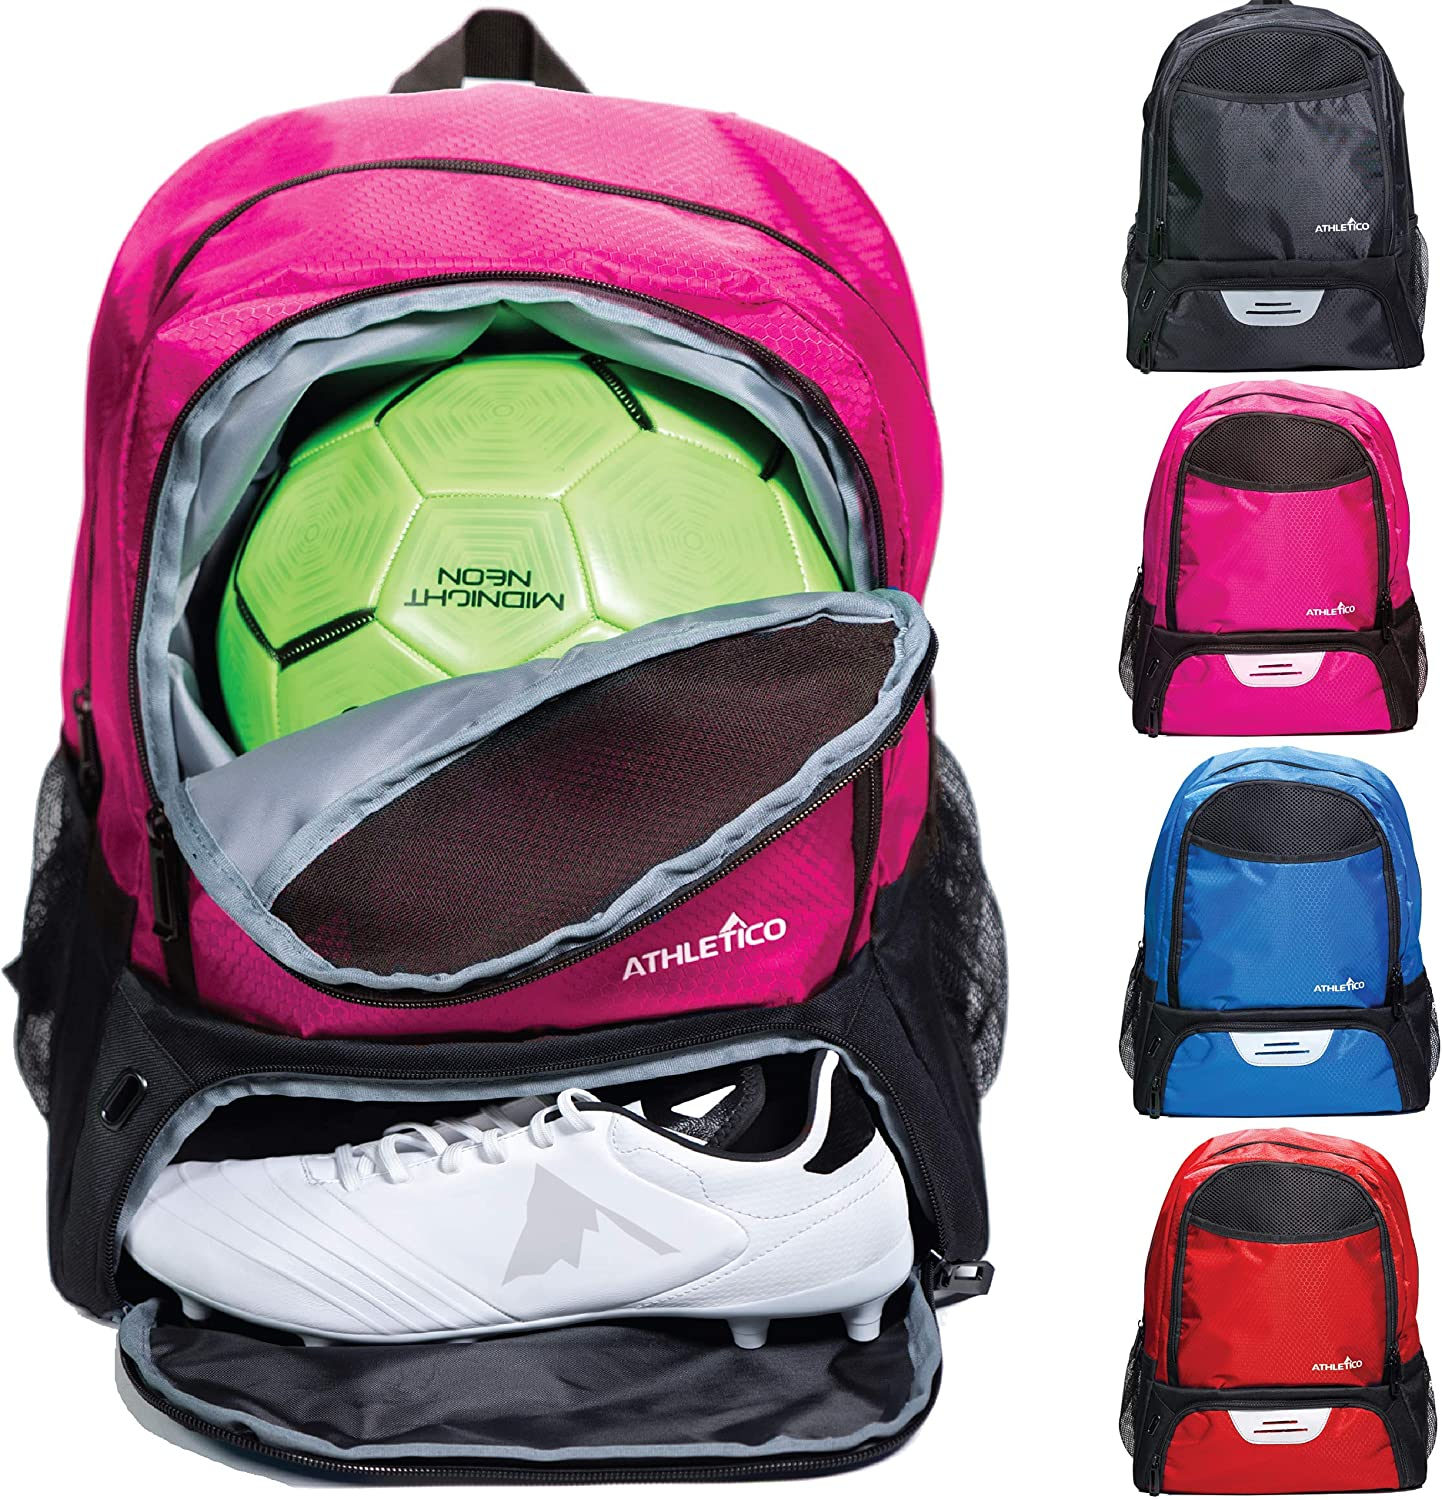 Athletico Youth Soccer Deluxe Bag Ranking TOP1 - Backpack for Basketba Bags